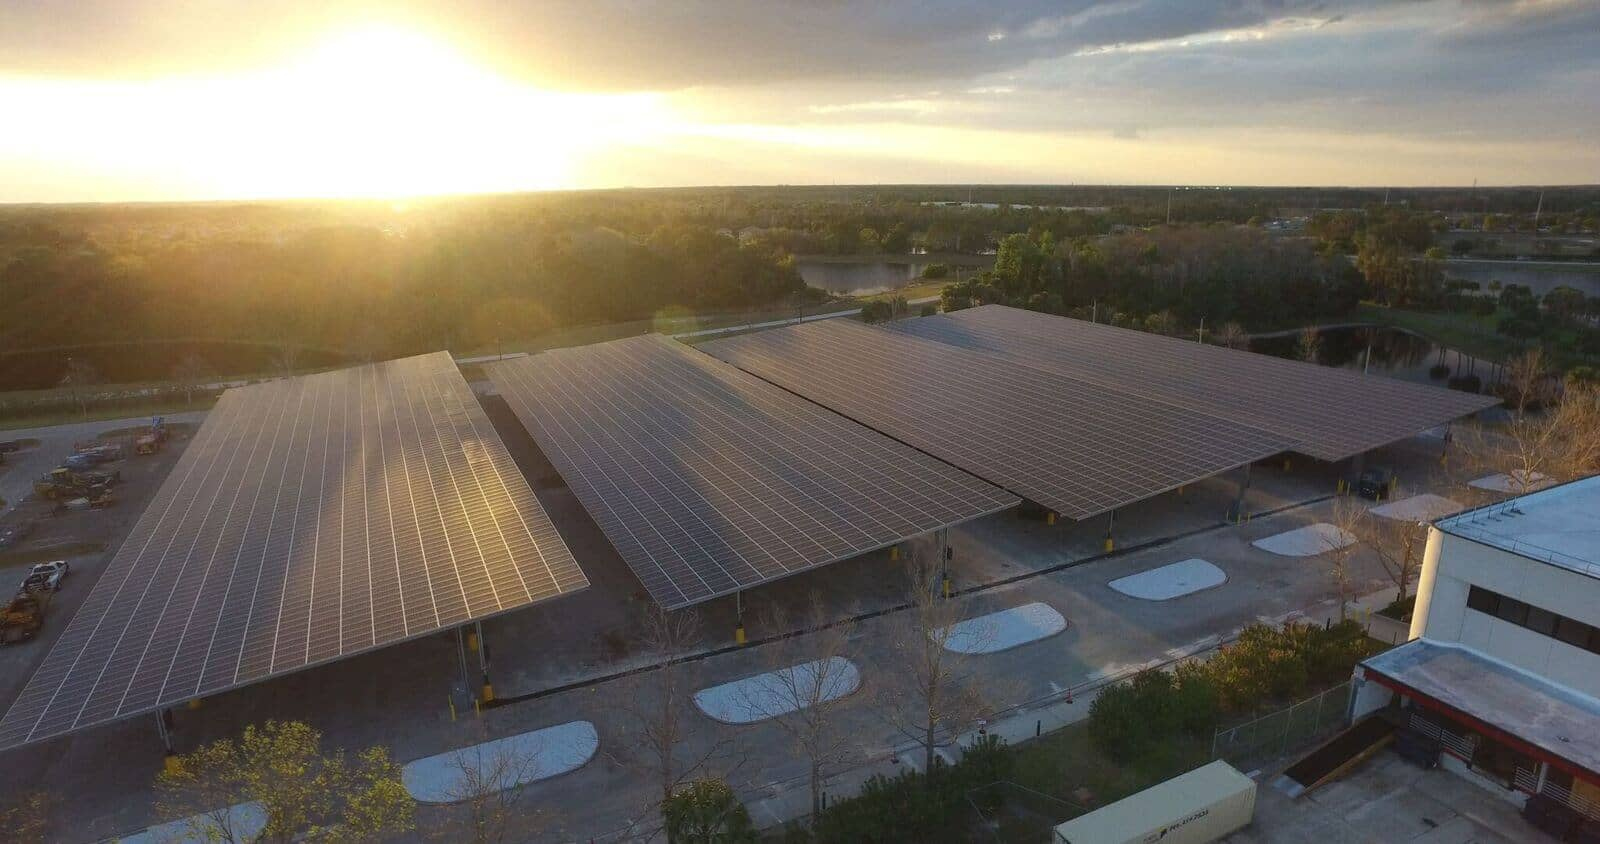 lockheed Lockheed Martin Adds Another Massive Solar Carport In Florida